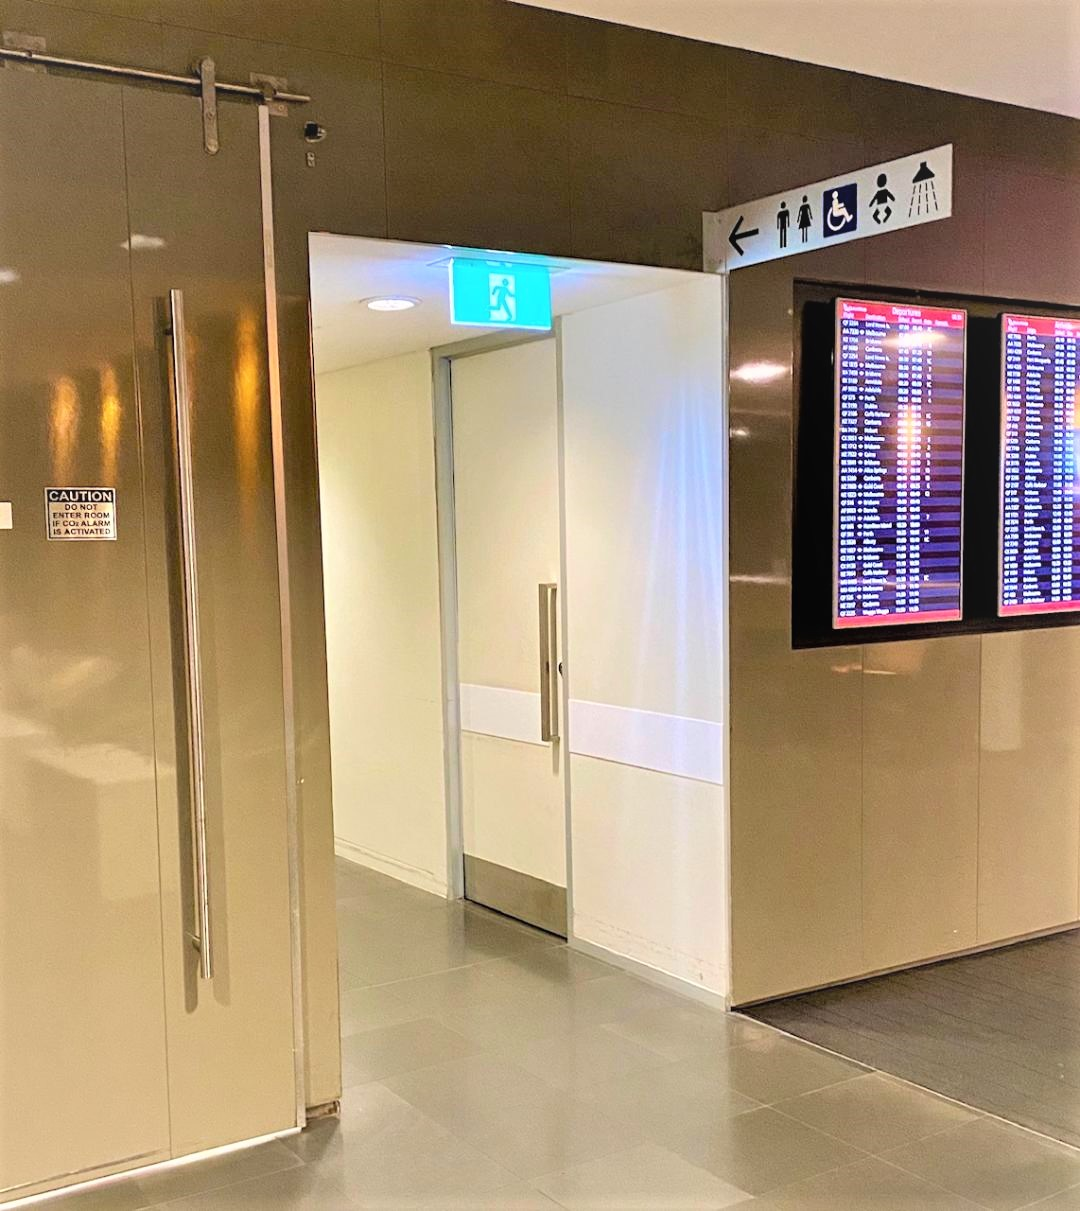 Access to Toilets, baby change room and Showers, Qantas Domestic Lounge - Sydney Airport